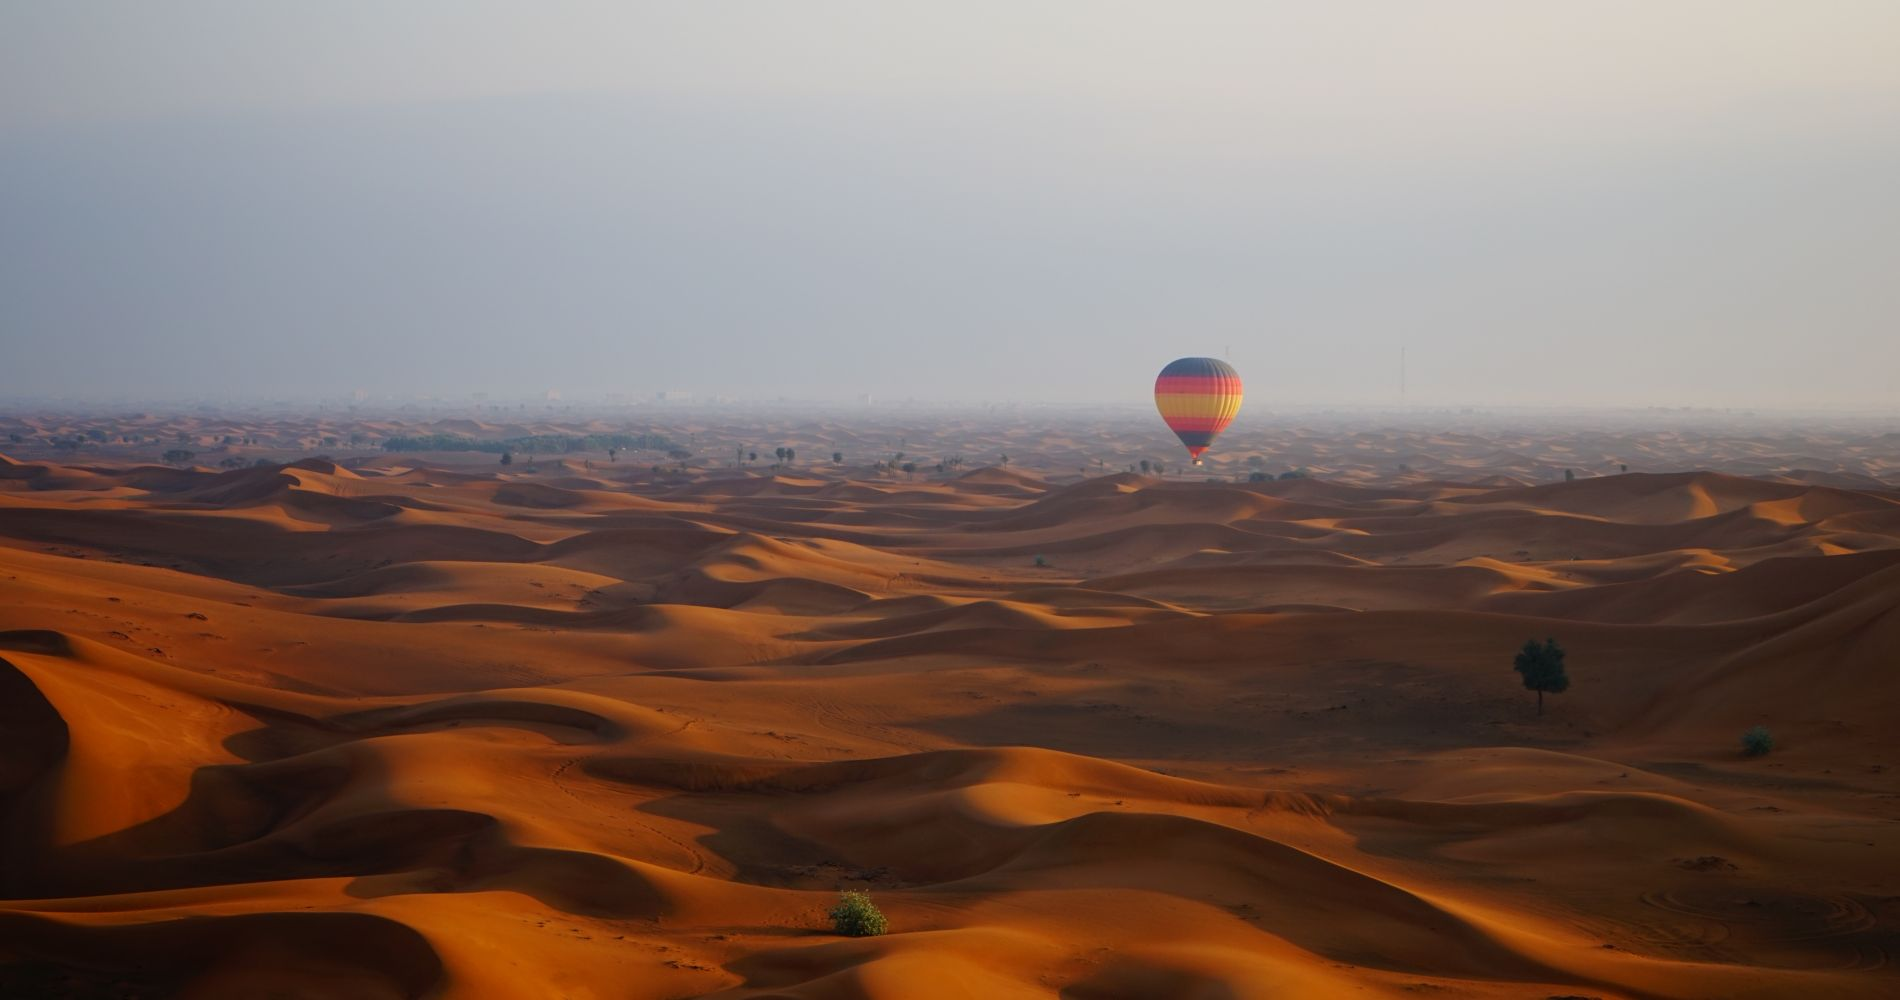 Breathtaking Hot Air Balloon Flight Desert Dubai Tinggly Experience Gifts